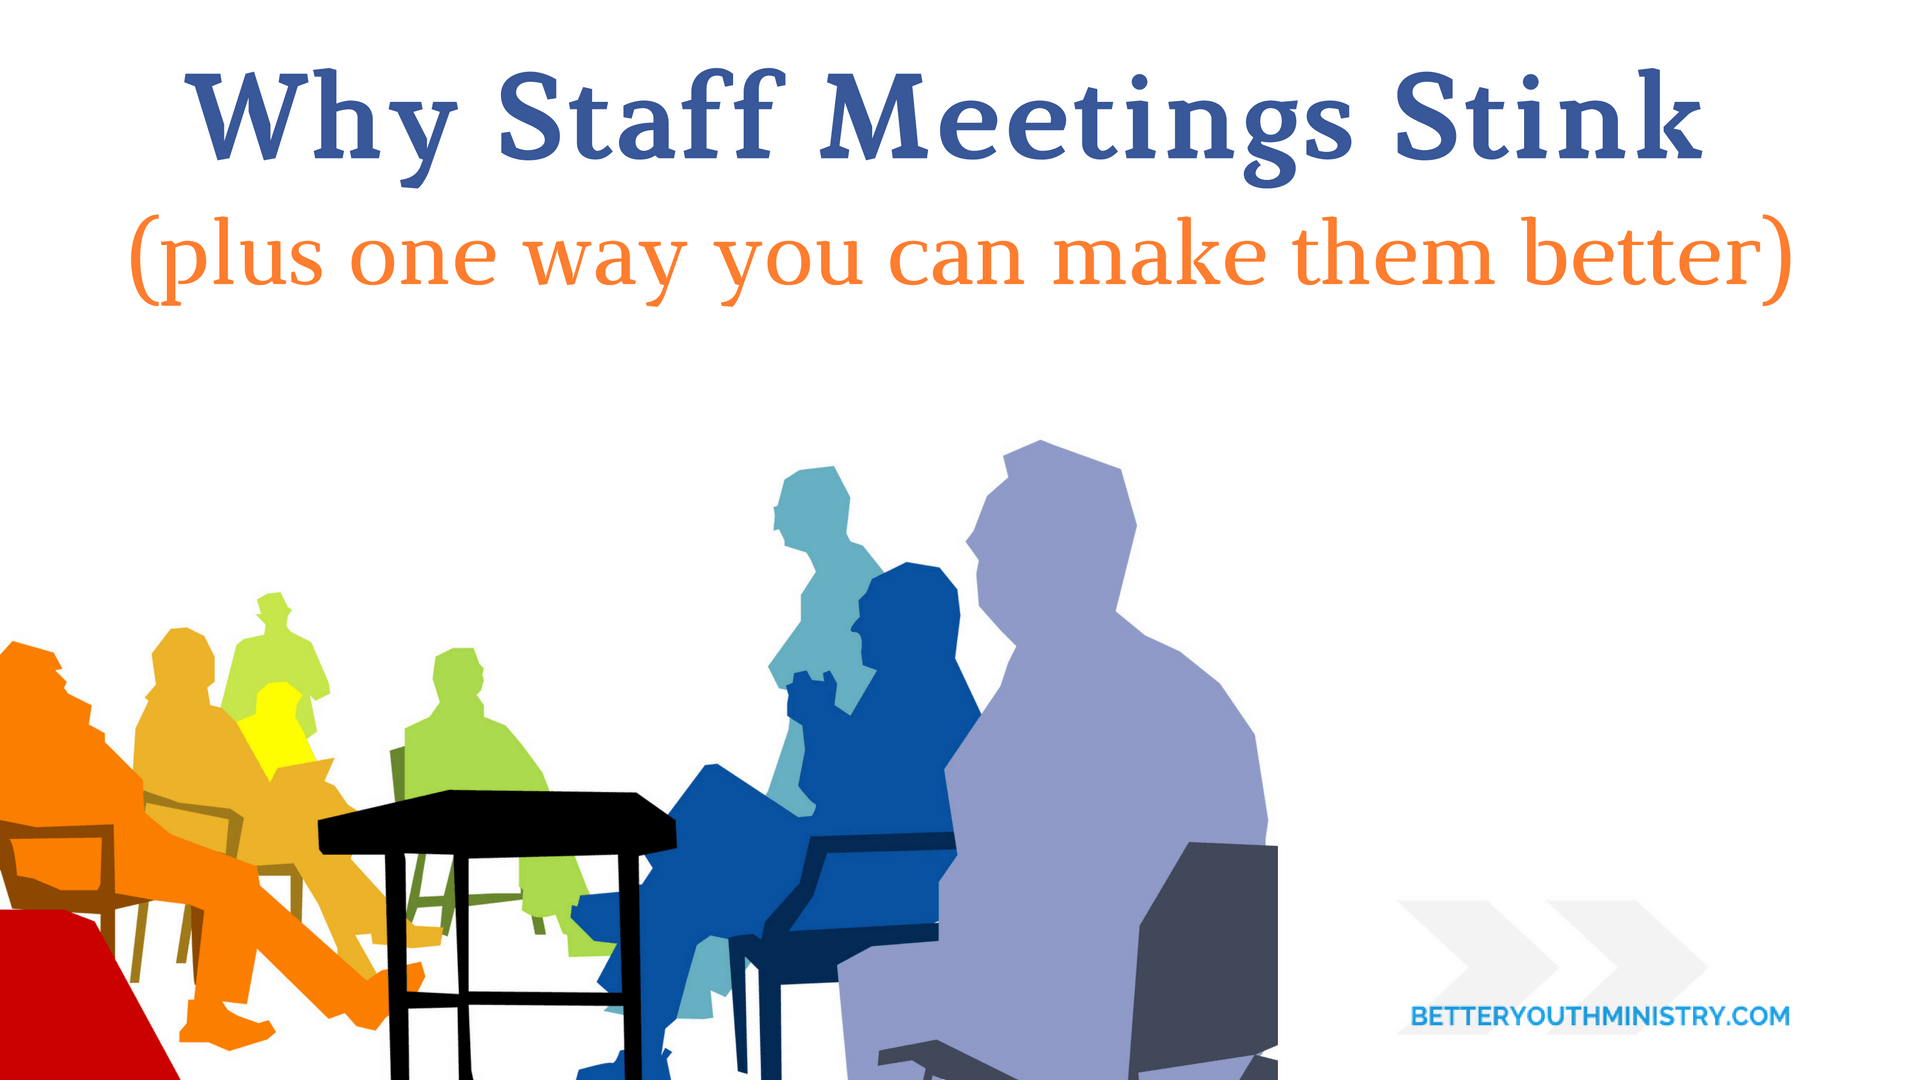 Why Staff Meetings Stink